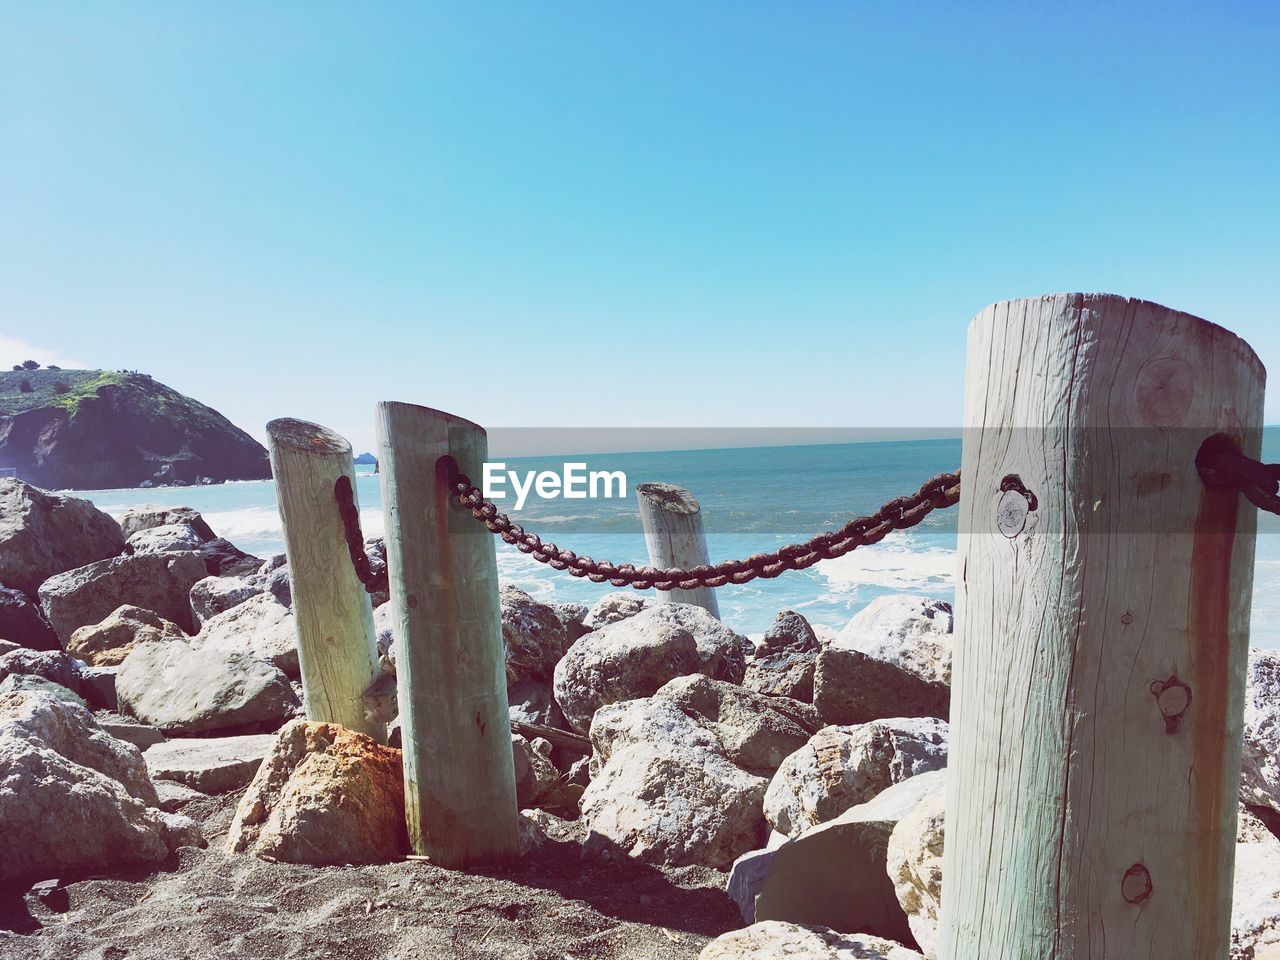 sea, water, horizon over water, clear sky, nature, beauty in nature, tranquil scene, scenics, tranquility, day, no people, sunlight, rock - object, outdoors, beach, blue, sky, wooden post, mountain, close-up